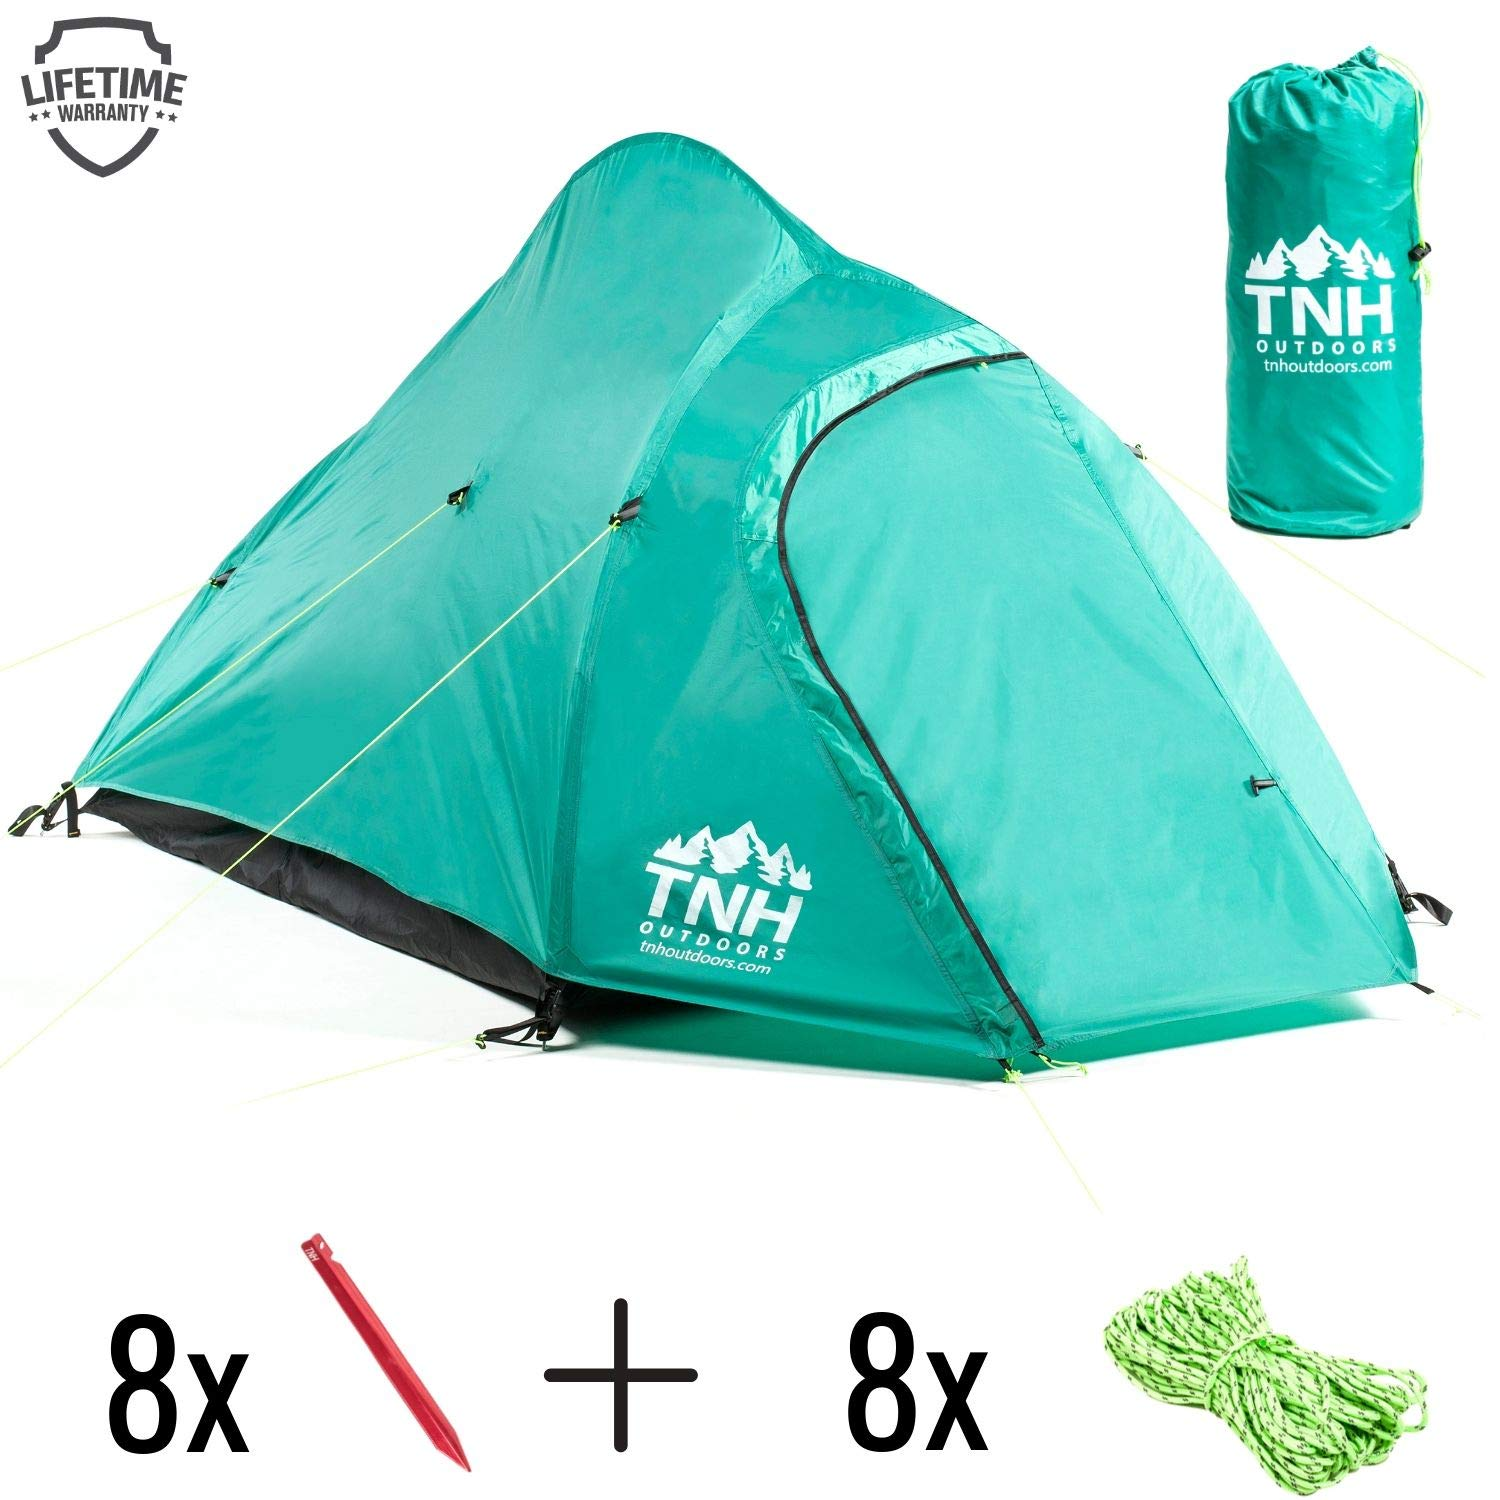 Rakaia Designs 2 Person Camping & Backpacking Tent with Carry Bag and Stakes - Portable Lightweight Easy Setup Hiking Tent by Rakaia Designs